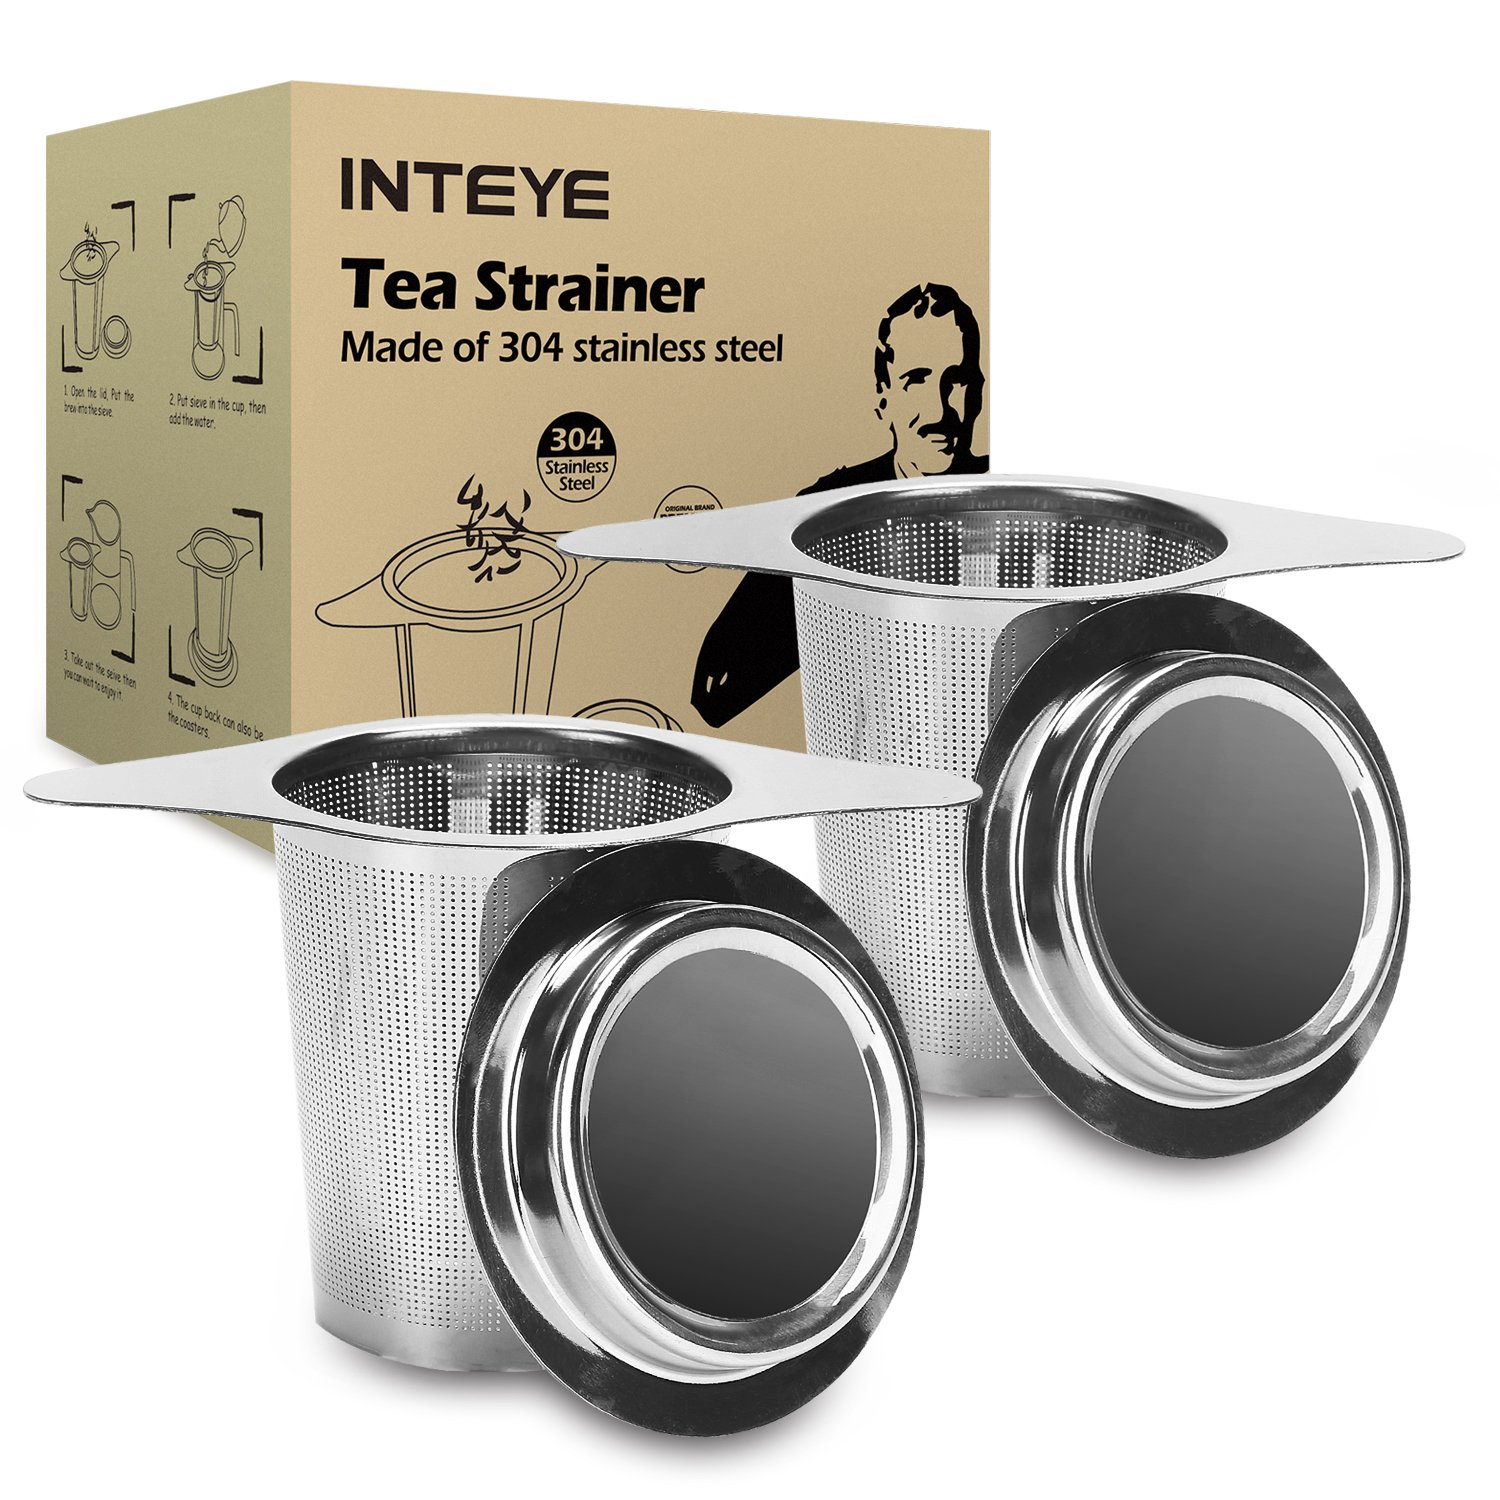 Tea Infuser,Tea Strainer,2 PACK 304 Stainless Steel Water Filter with Double Handles for Hanging on Teapots, Mugs, Cups to steep Loose Leaf Tea and Coffee,Cold Brew Coffee Maker. FDA Approved. by INTEYE (Image #1)